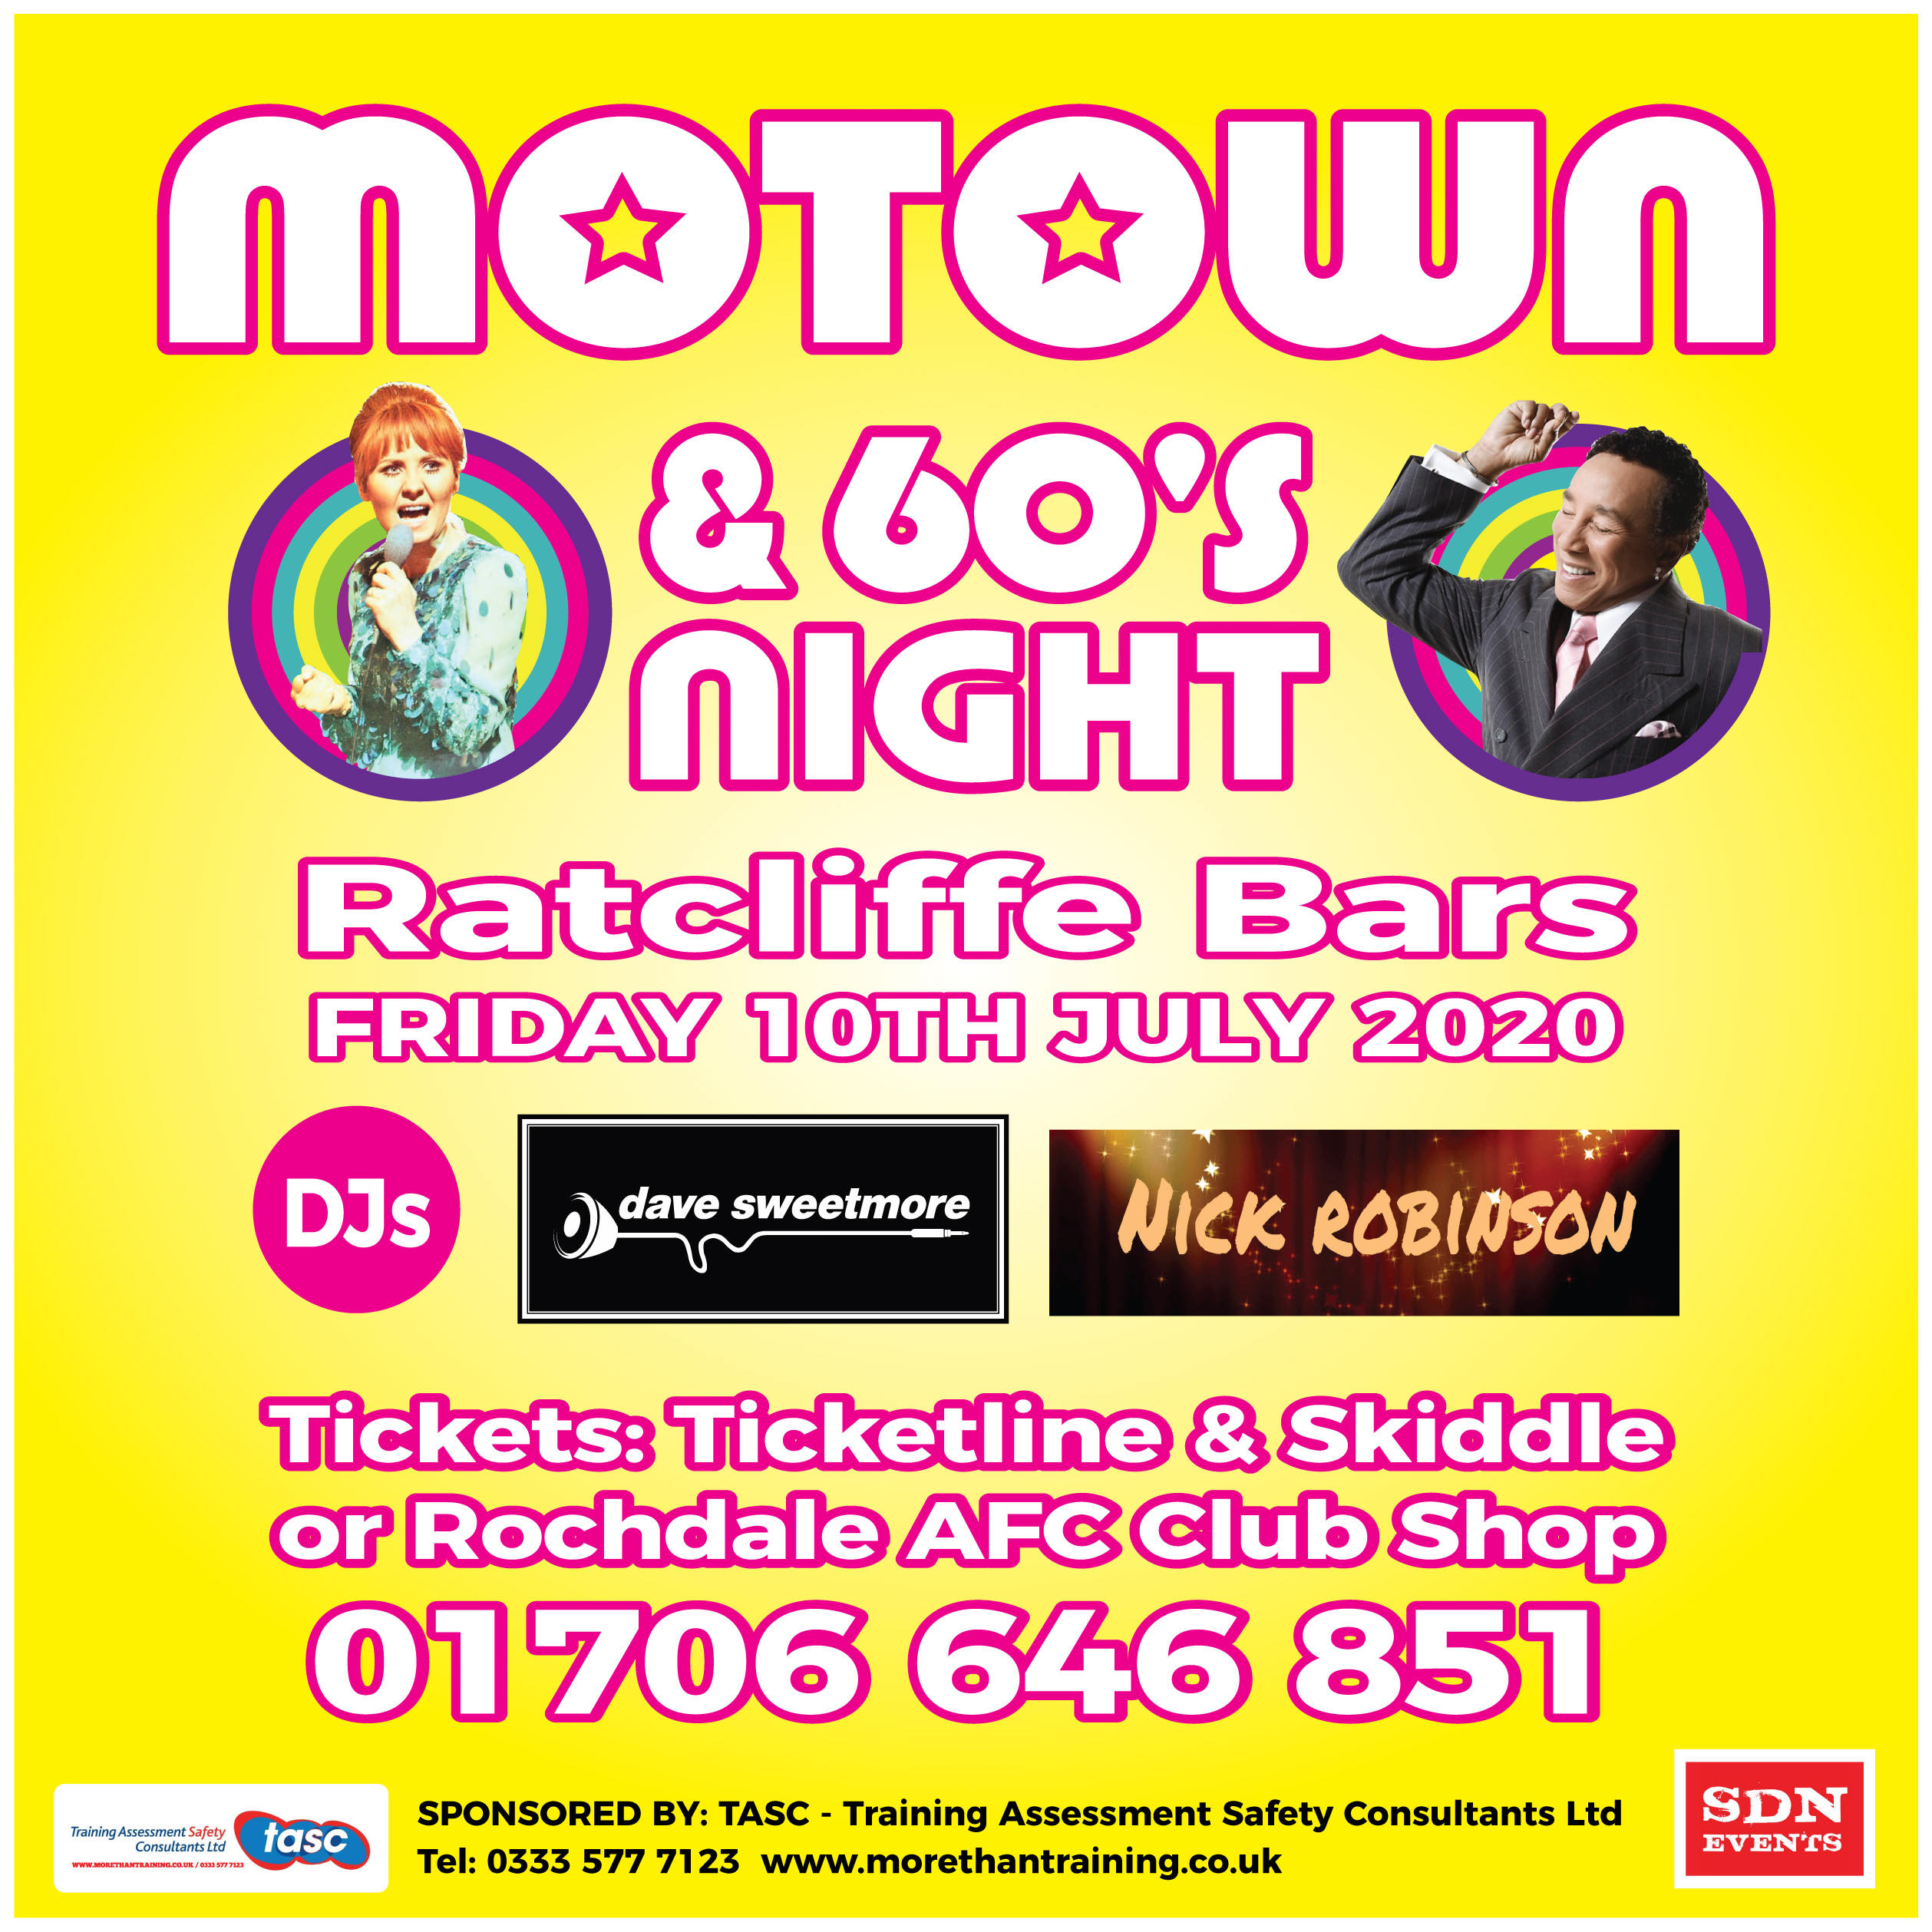 Motown & 60's Dance Party